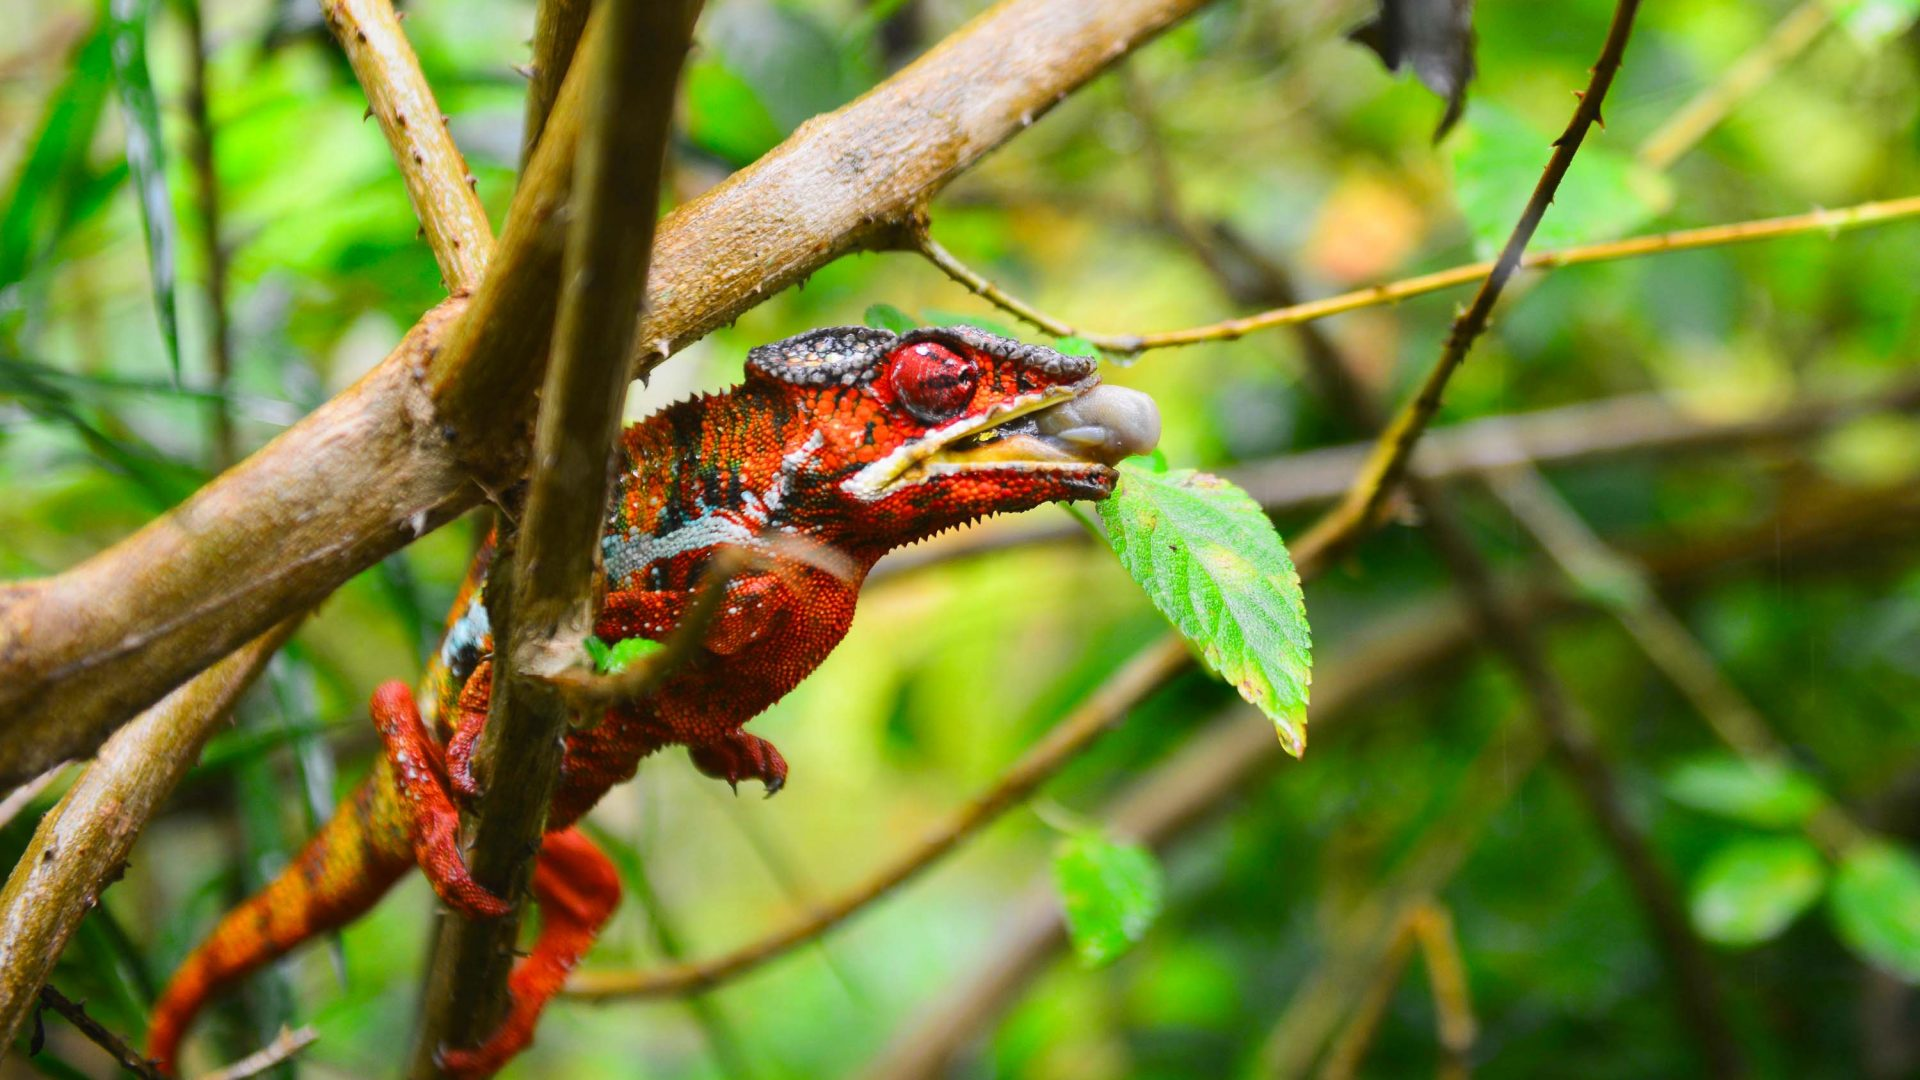 A chameleon near the village of Vohimana, Madagascar.